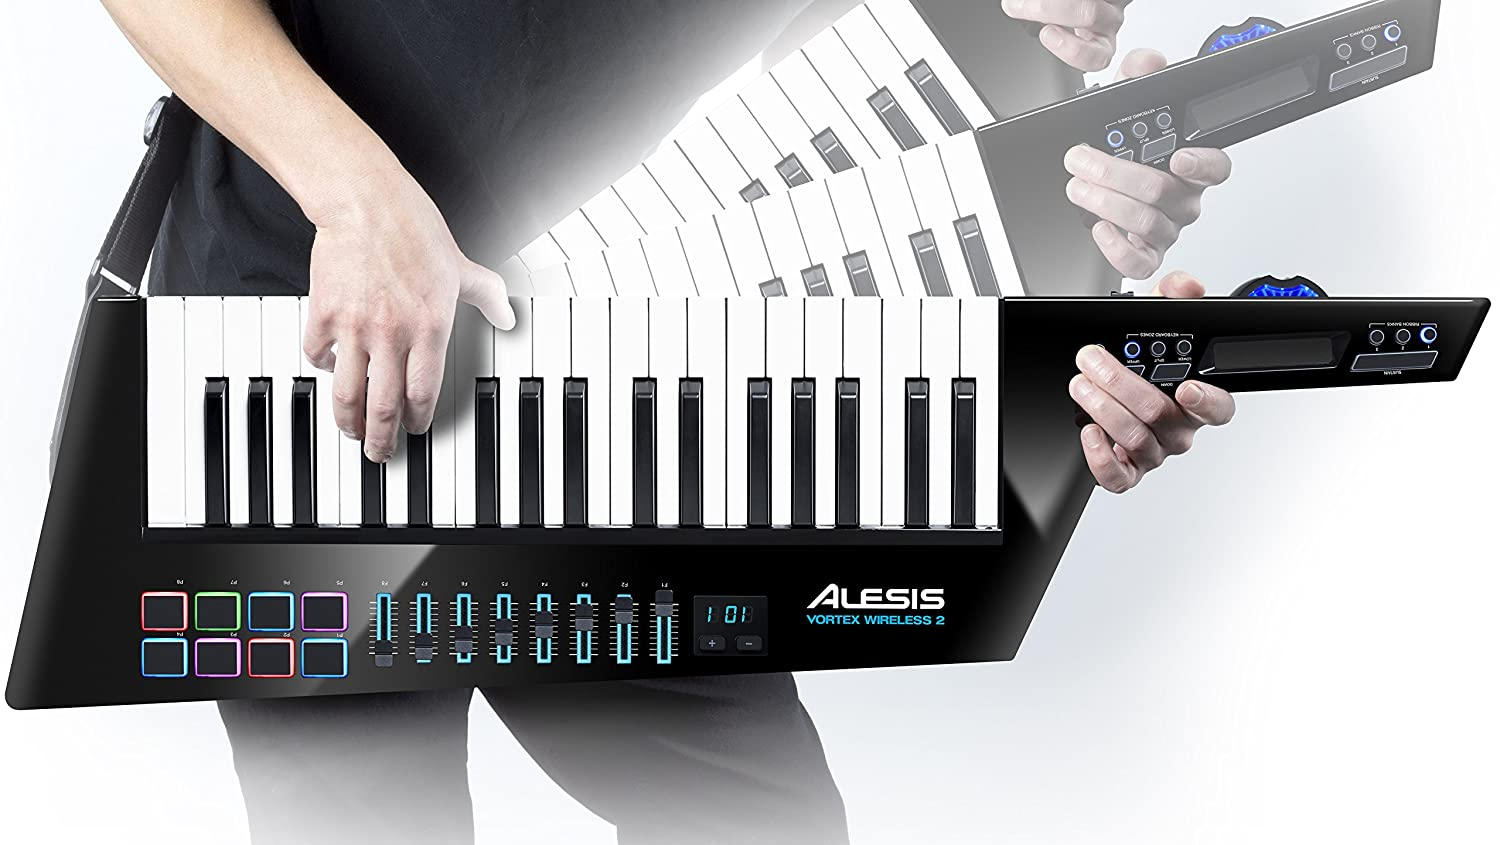 Alesis Vortex Wireless 2 - Controlador Keytar Inalámbrico USB, MIDI de Alto Rendimiento con Suite de Software Premium Incluida, color negro: Amazon.es: ...